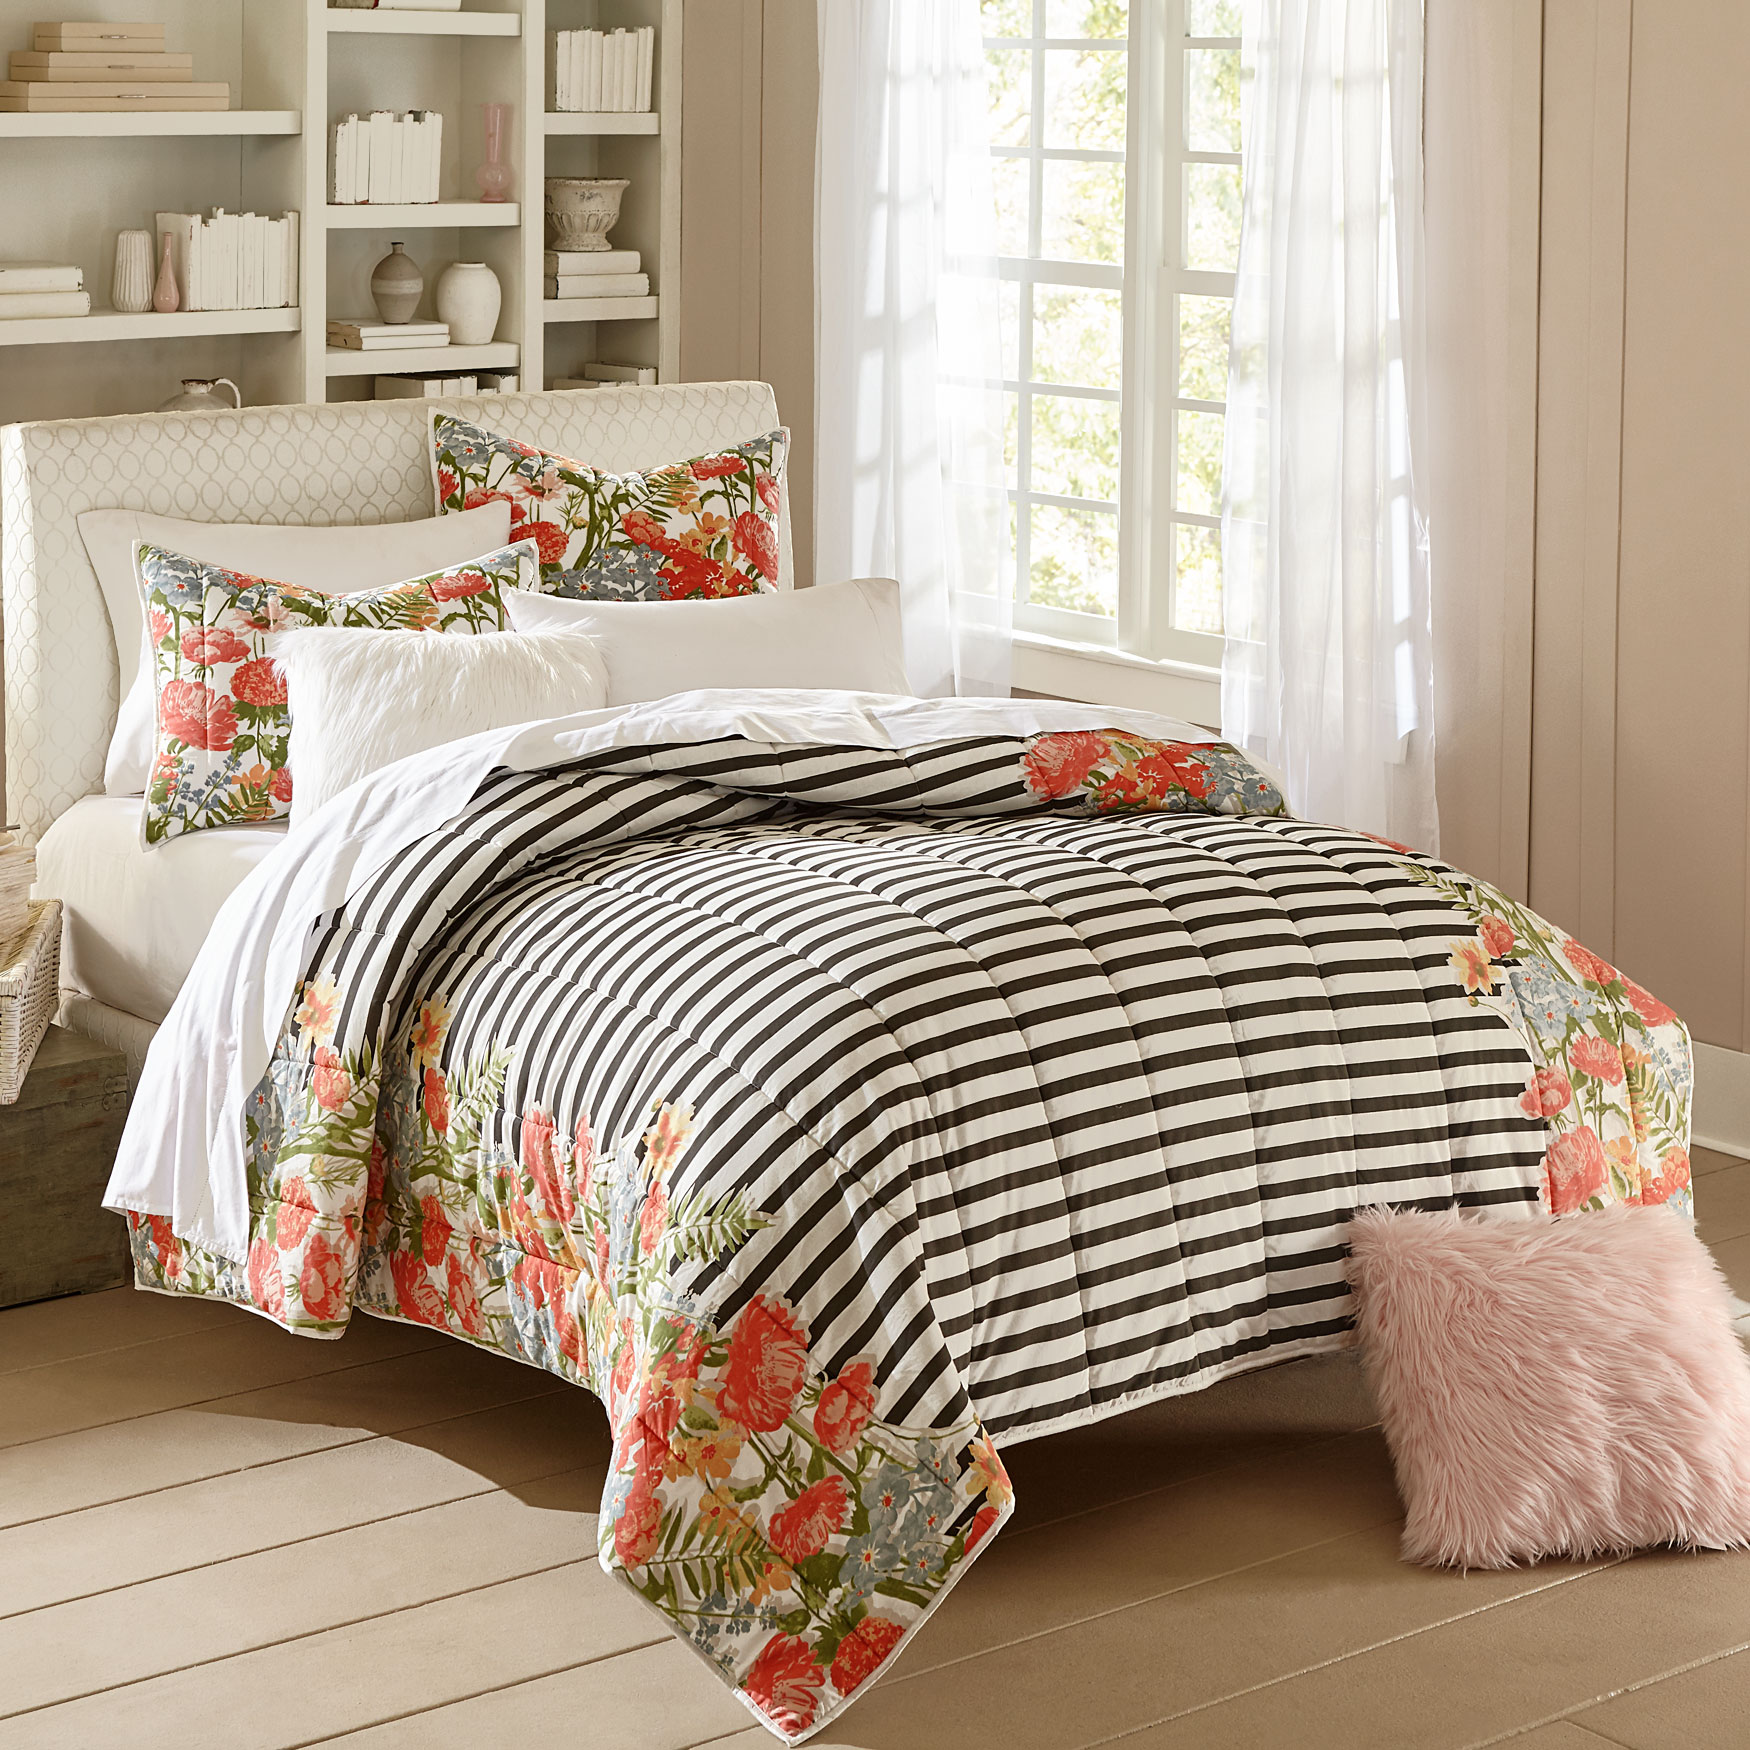 Bria Striped Floral Quilt,